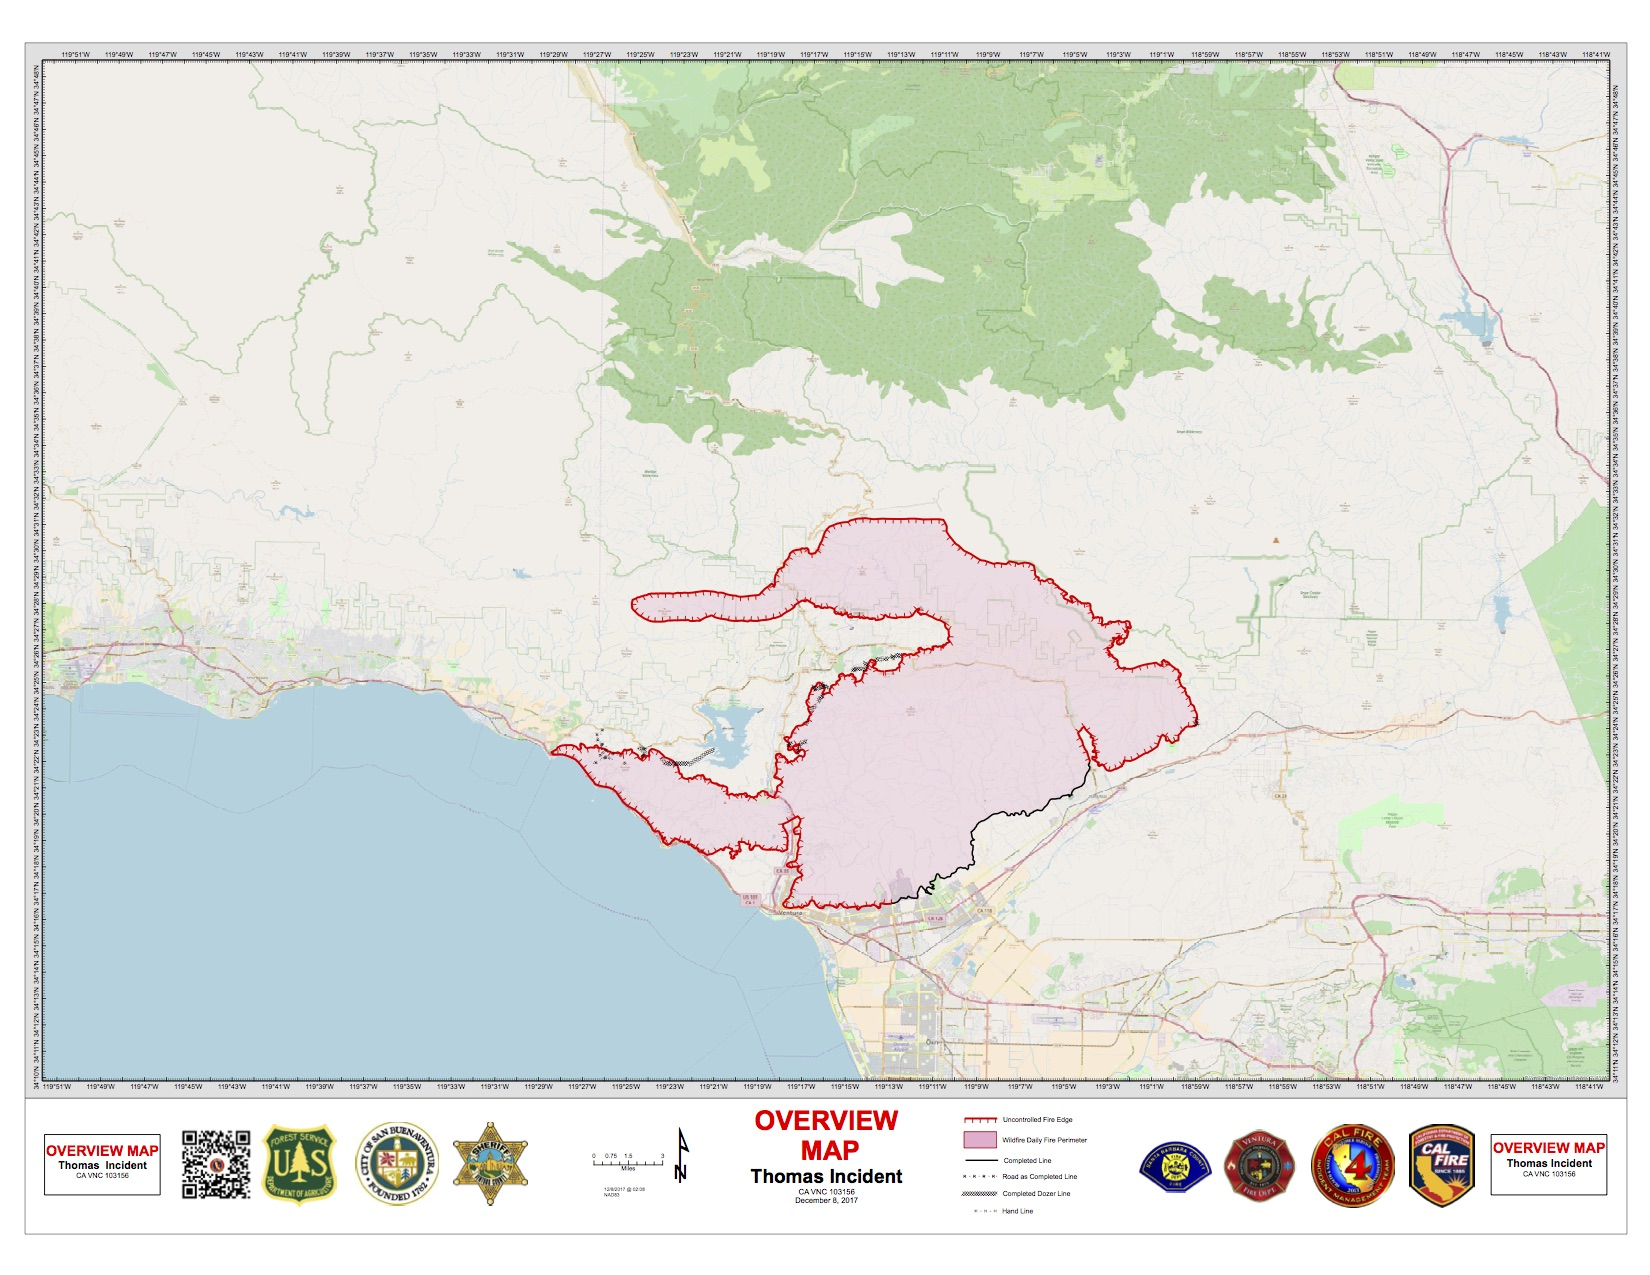 Friday Morning Update: Thomas Fire Grows to 132,000 Acres